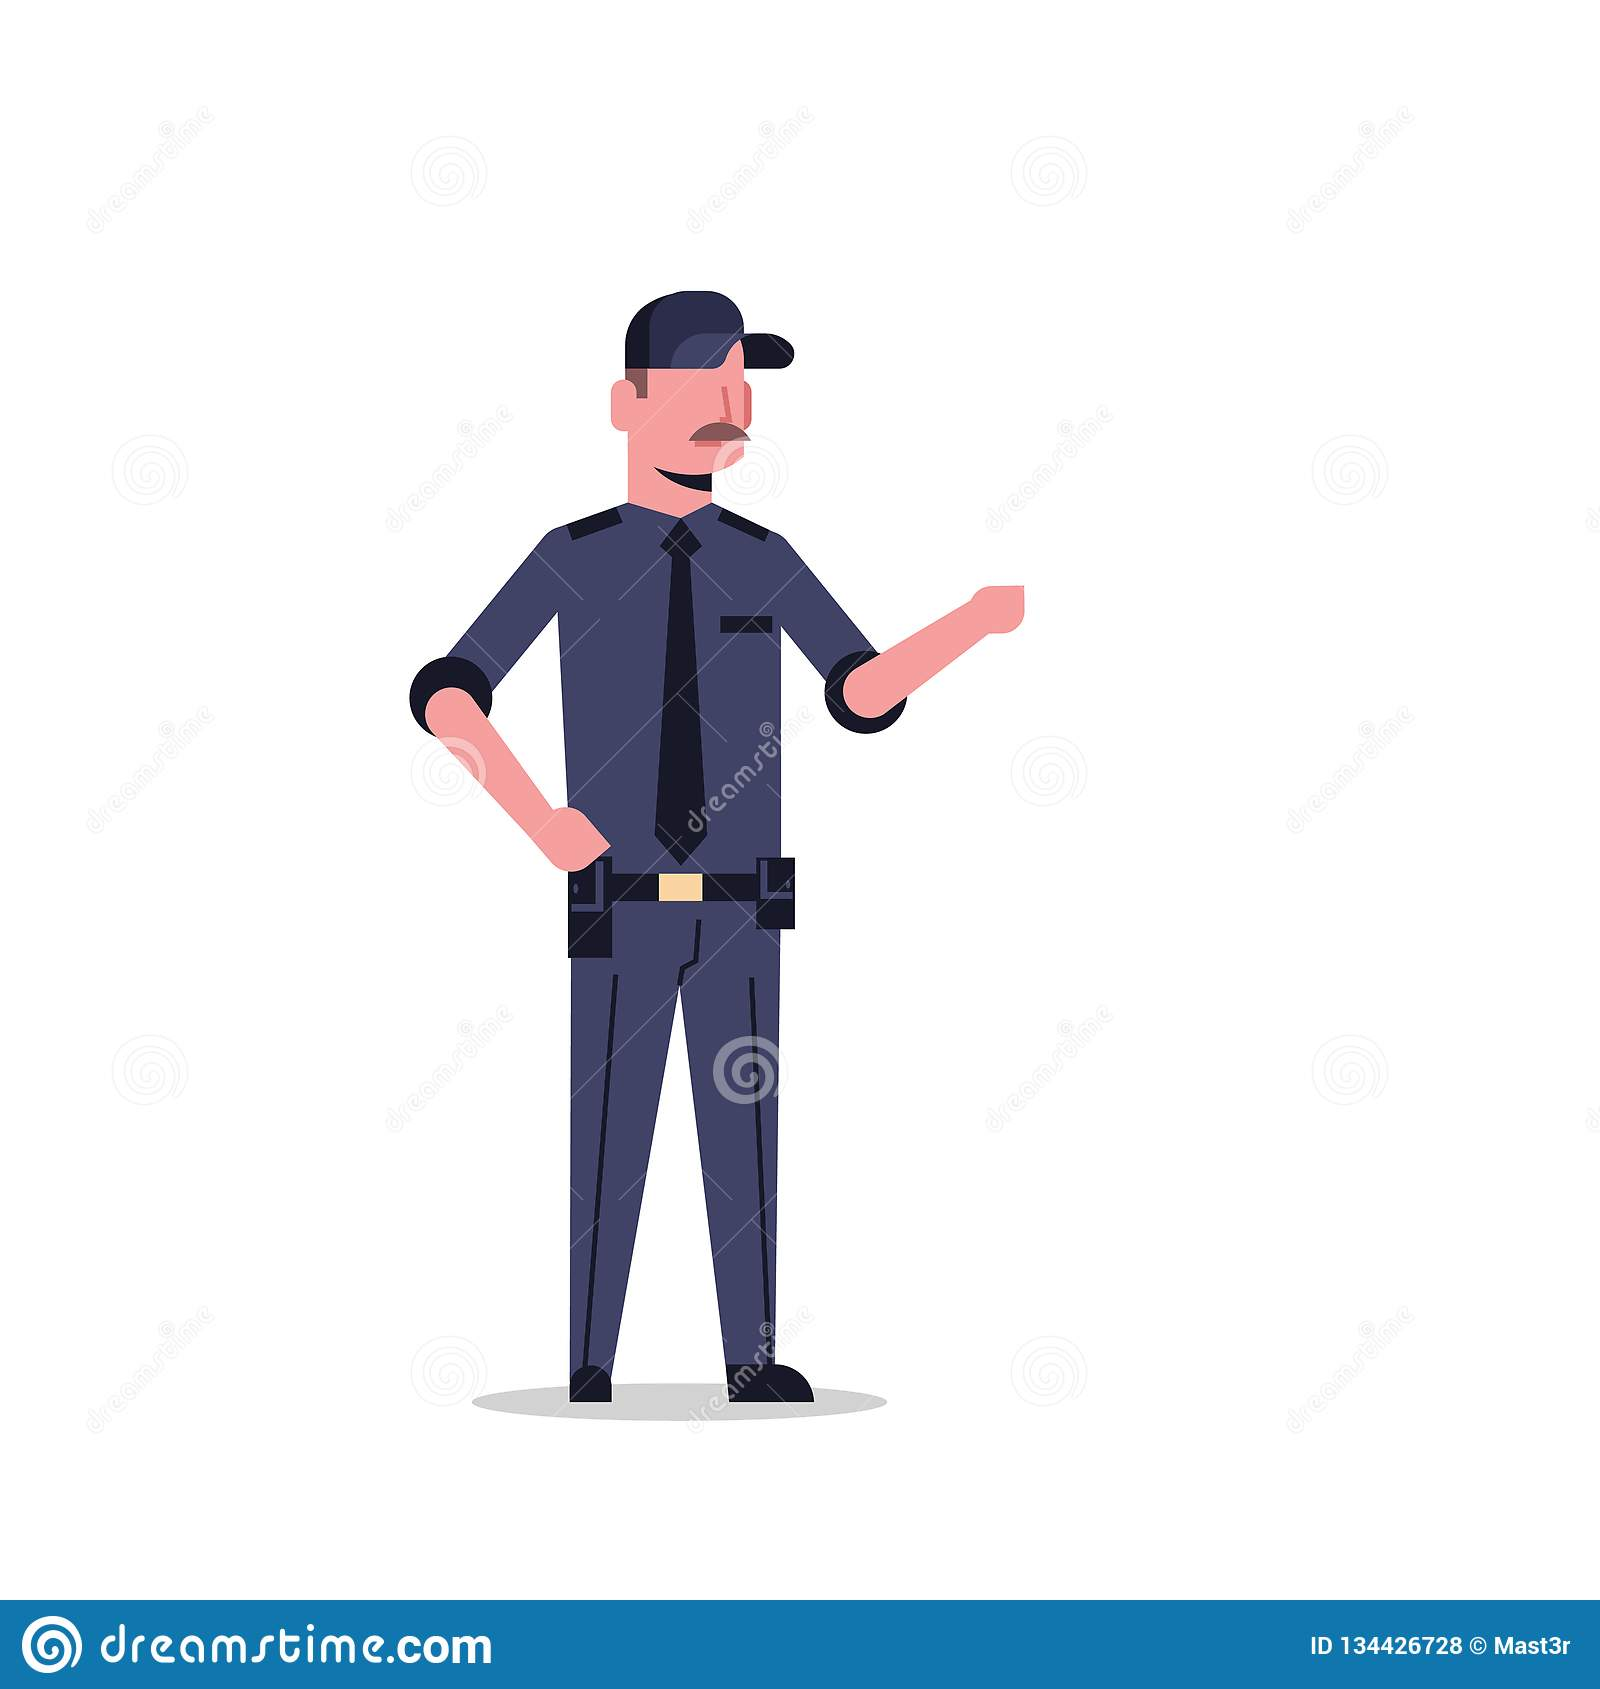 A uniform man about Something in